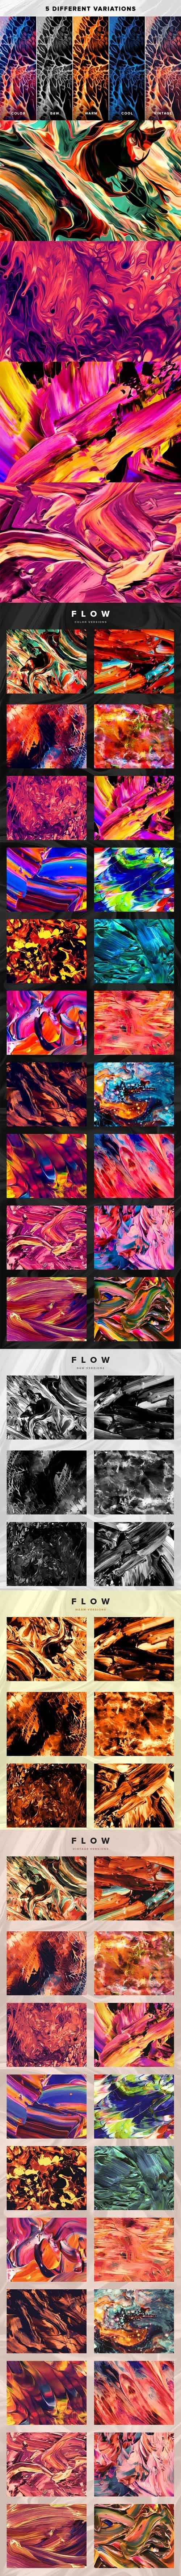 Flow: 100 fluid abstract paintings 1631334